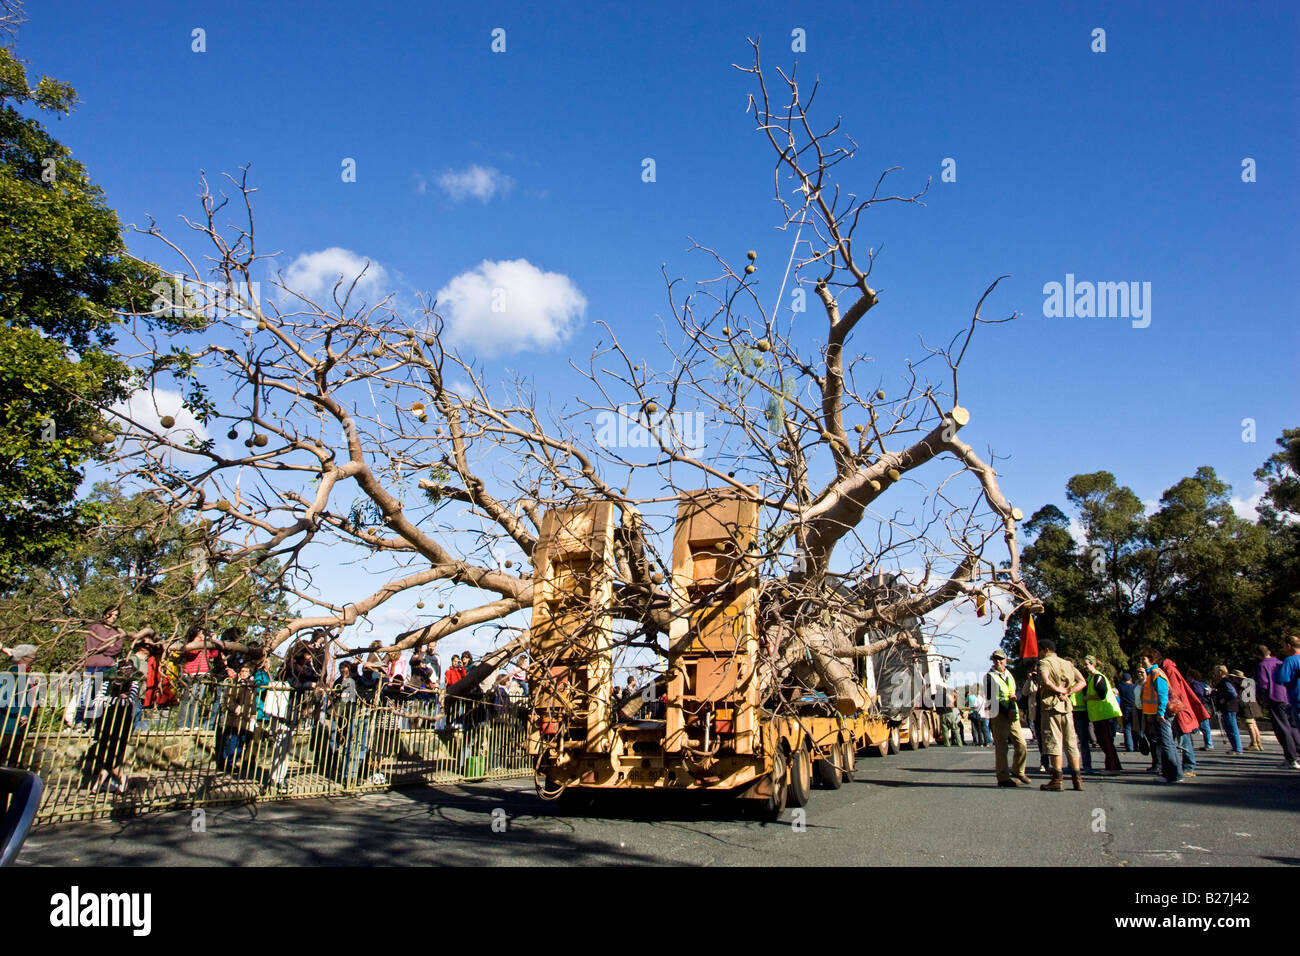 A 750 year old boab tree weighing 36 tons arrives in King's Park in Perth after its 3200km journey from Warmun - Stock Image